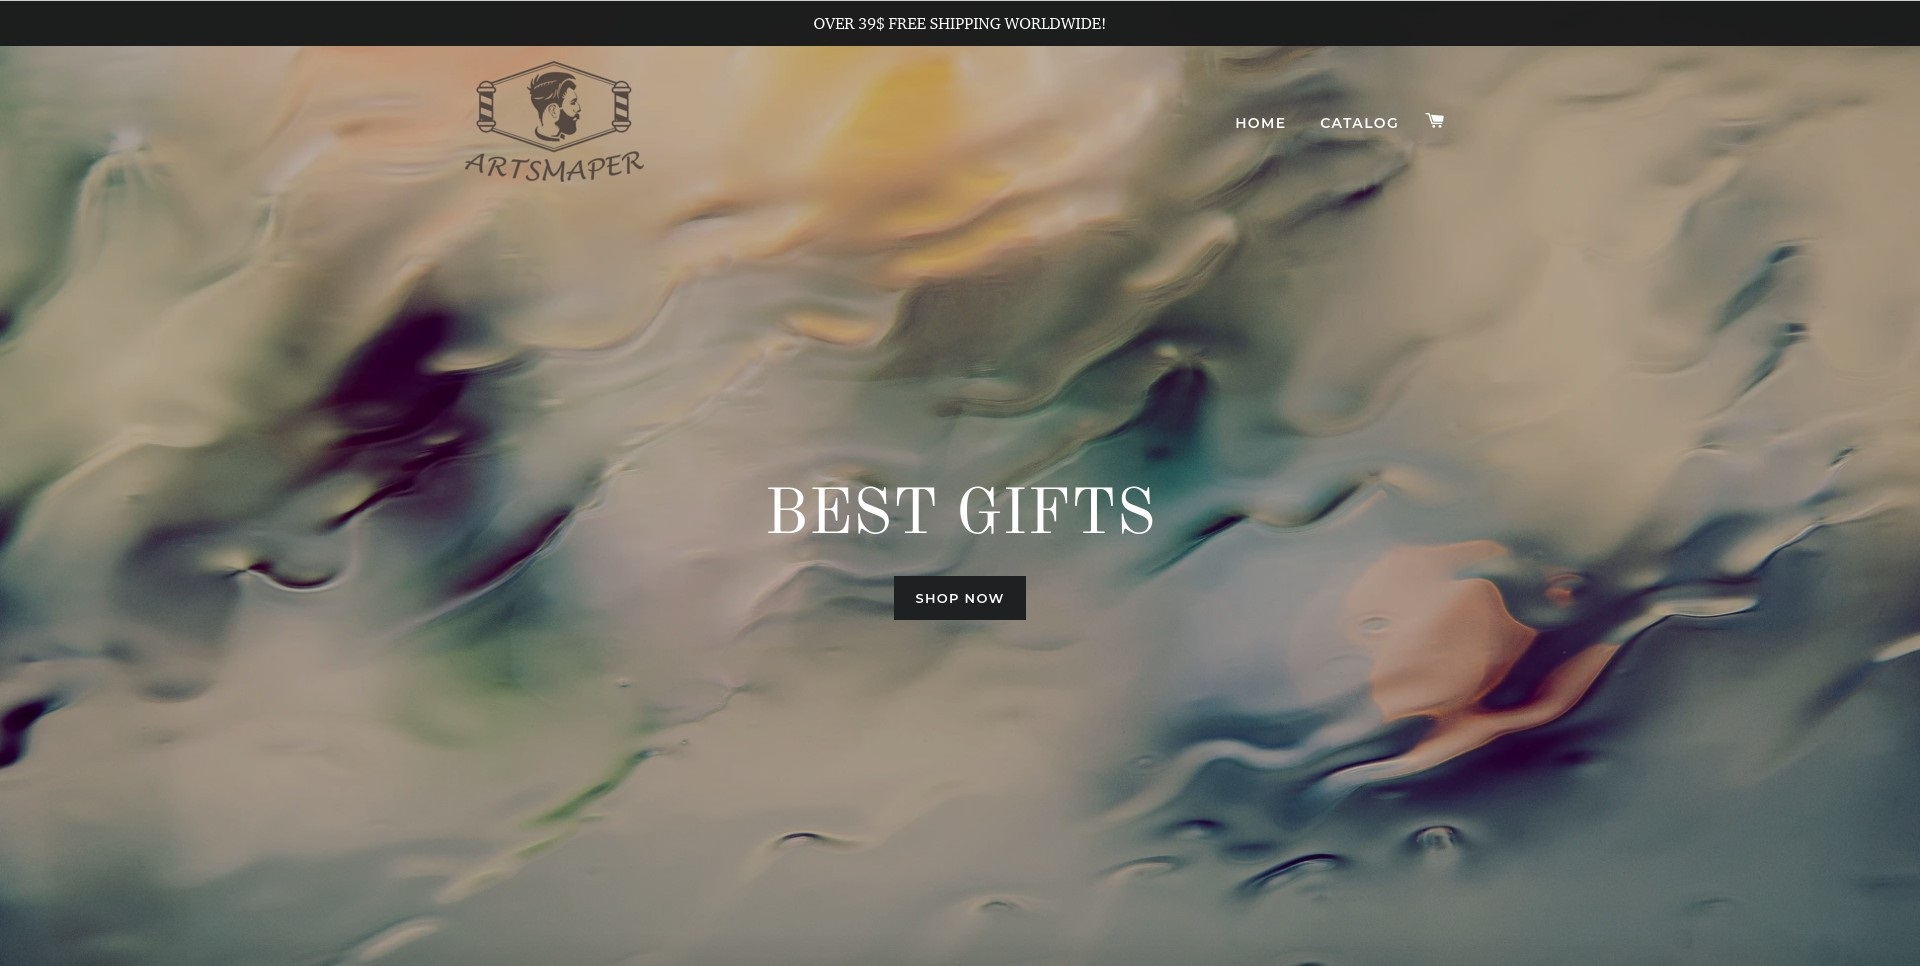 Is Artsmaper a Scam? See the Review of the Online Store